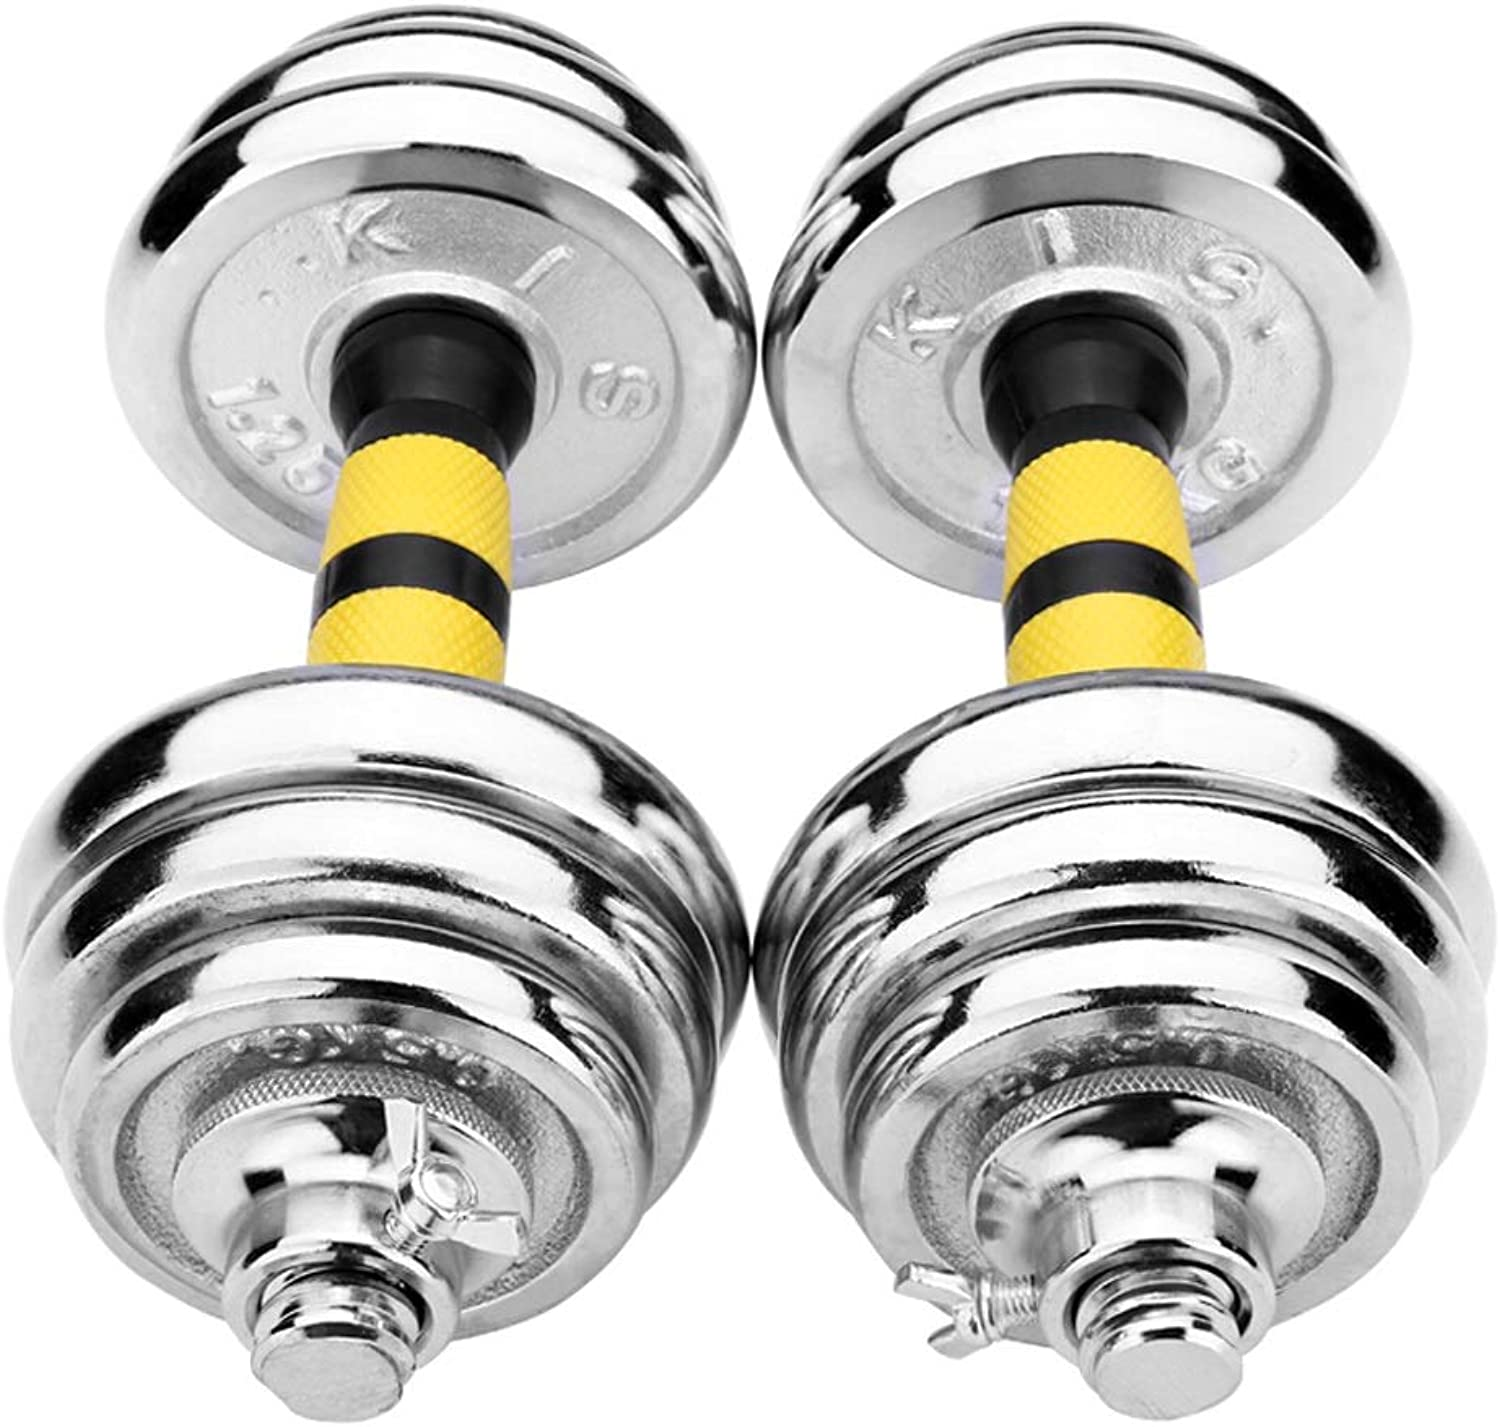 Electroplating Dumbbell Men's Barbell Set Combination Home Exercise Fitness Equipment A Pair of +30 cm Connecting Rod